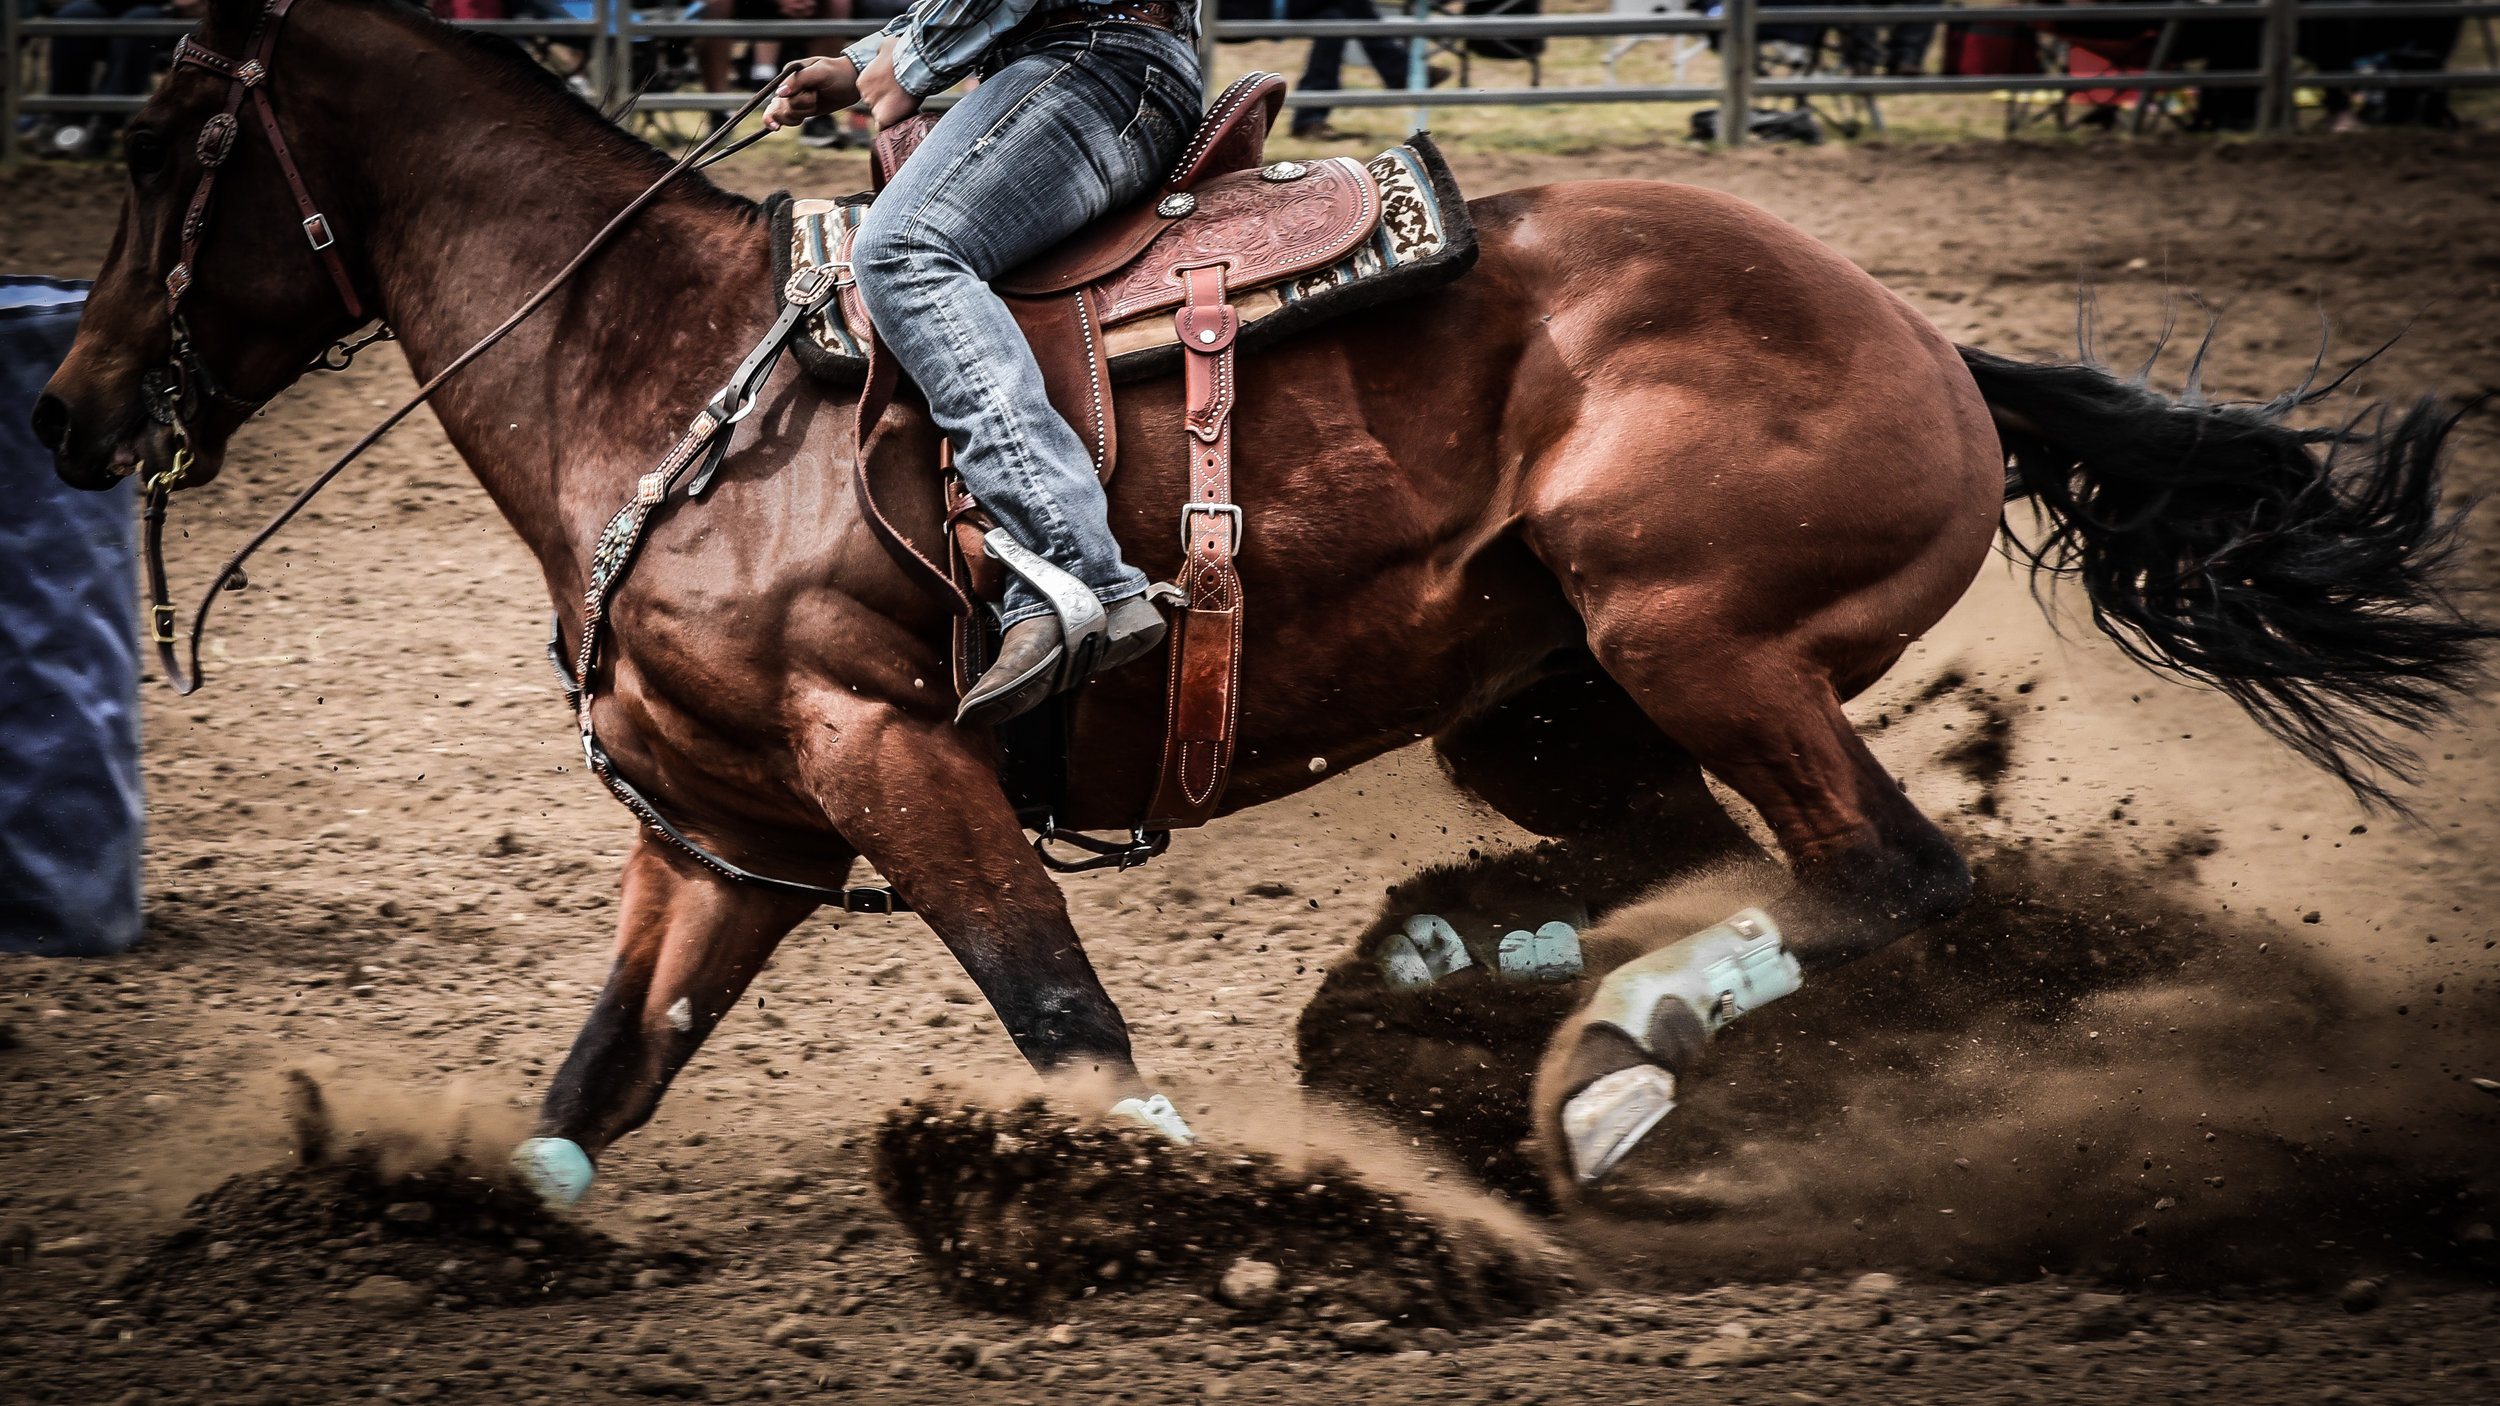 Experience a rodeo